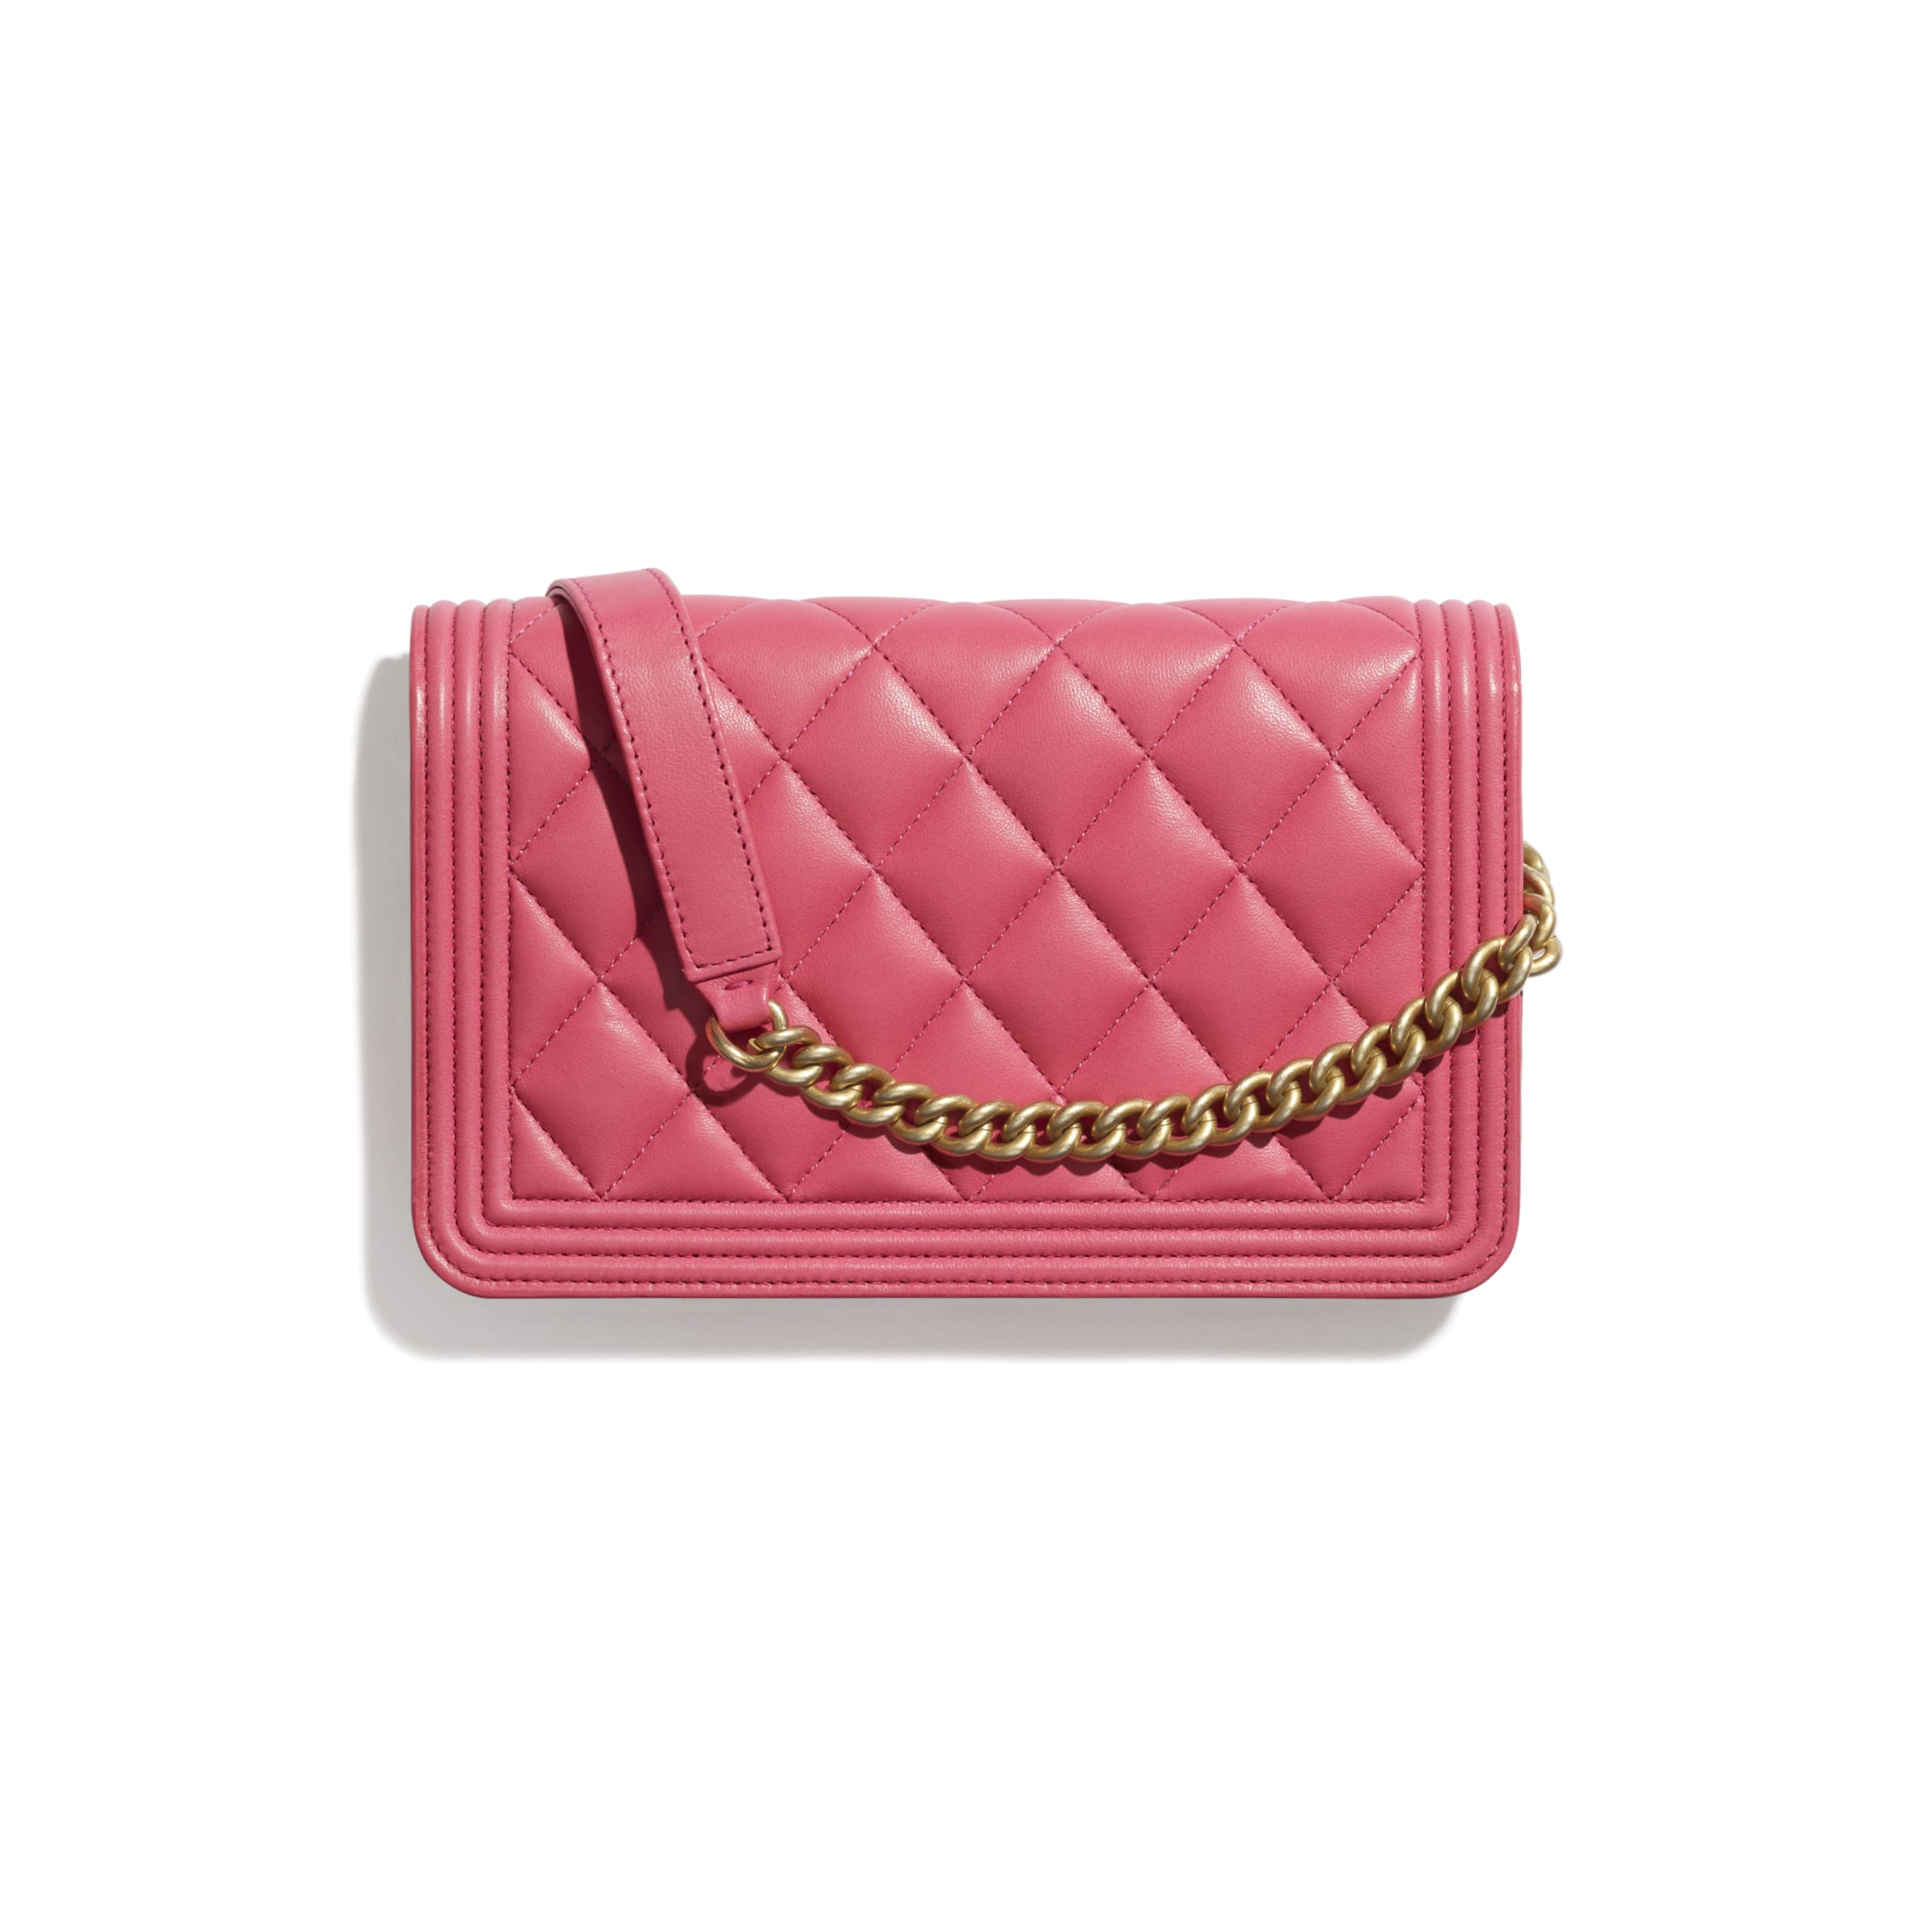 BOY CHANEL Wallet On Chain - Pink - Lambskin - CHANEL - Alternative view - see standard sized version